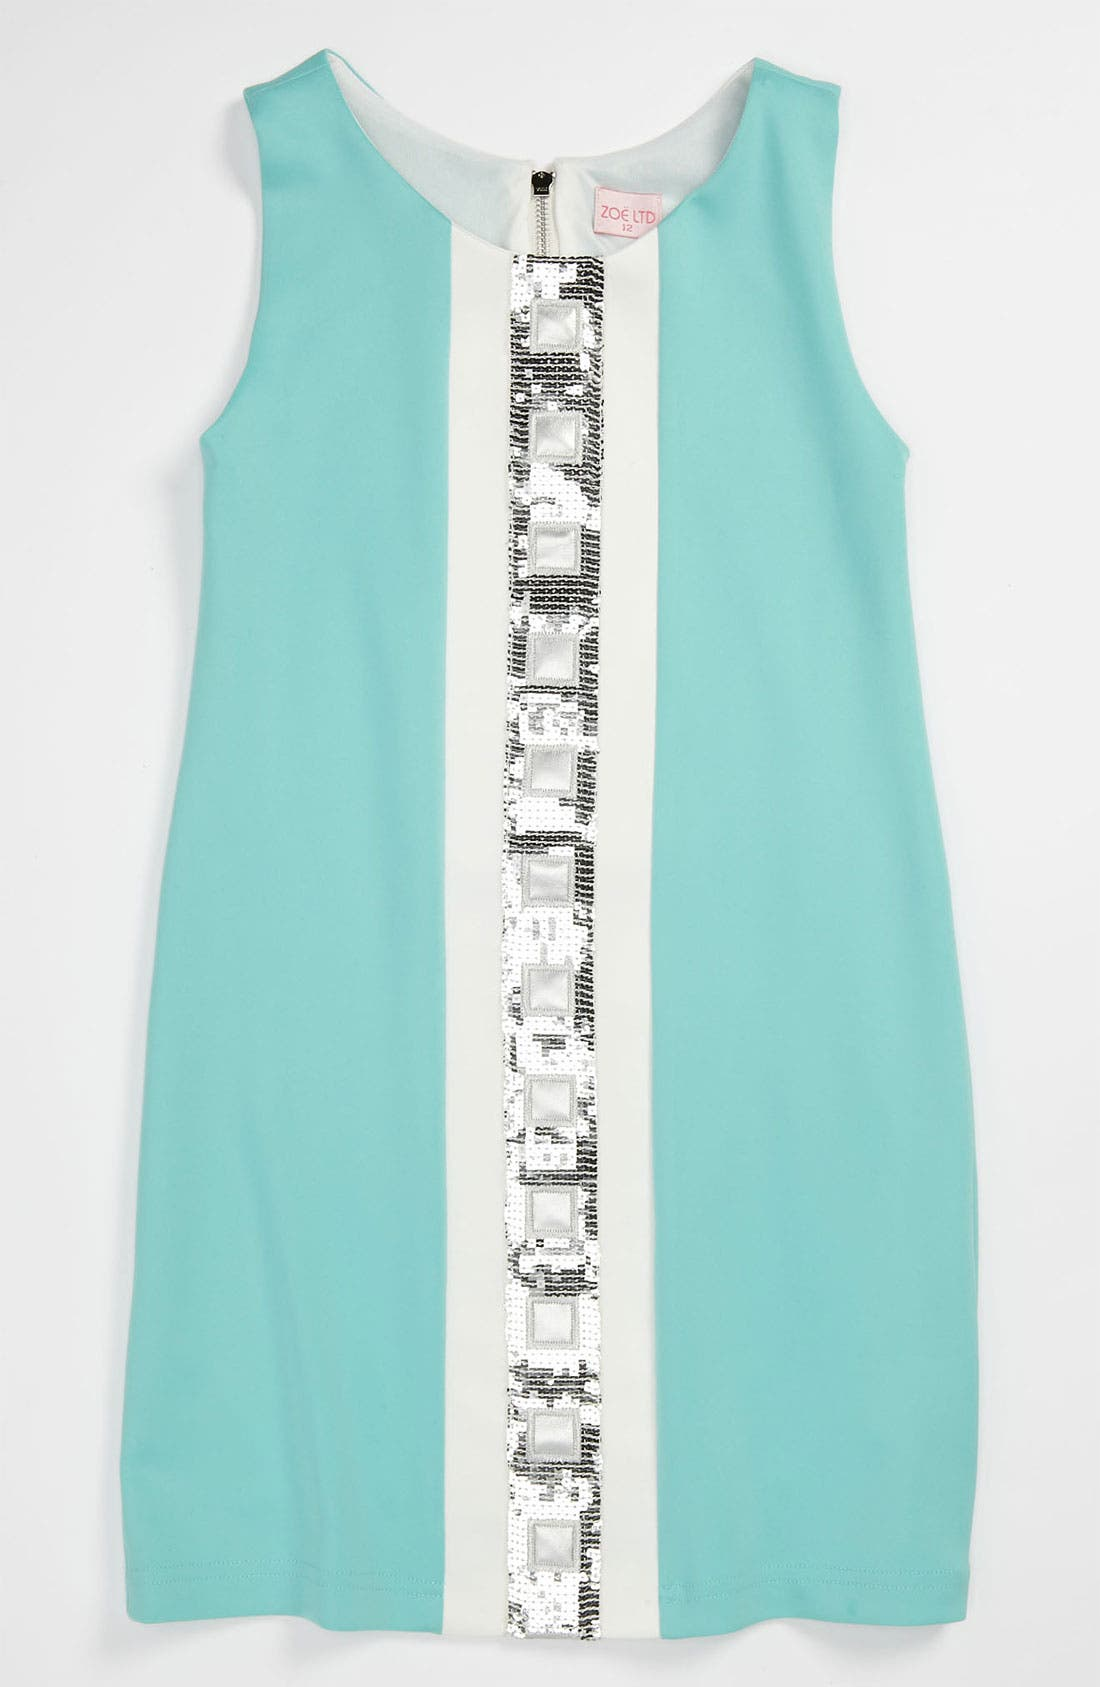 Alternate Image 1 Selected - Zoe 'Mod' Sequin Squares Sleeveless Dress (Big Girls)